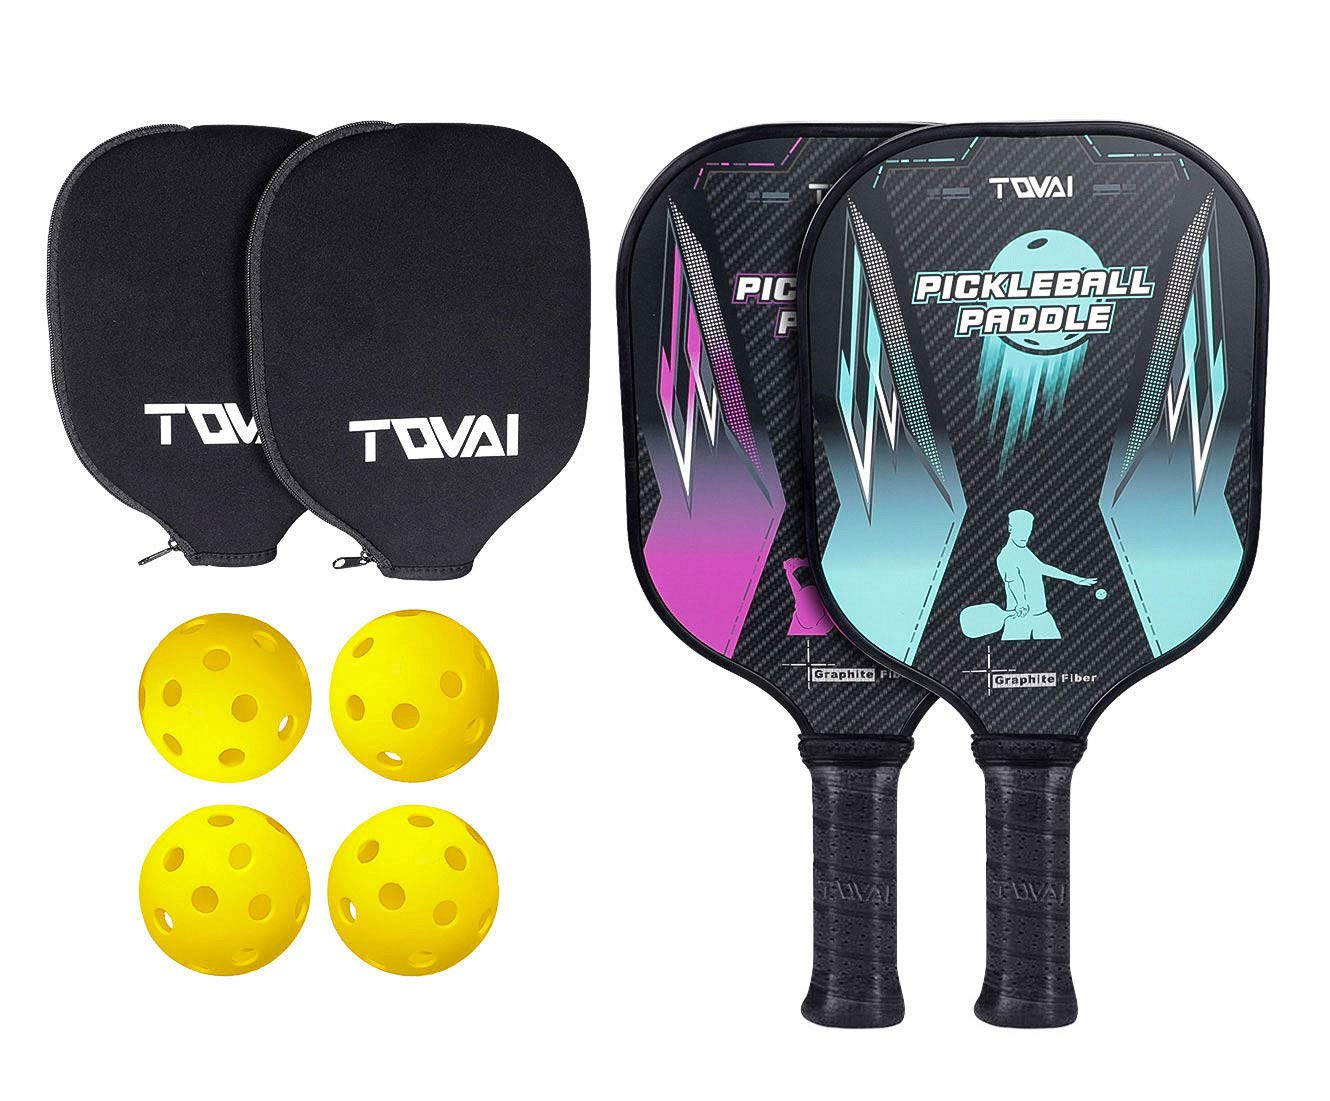 TQVAI Graphite Pickleball Paddles Set - 2 Lightweight Graphite Honeycomb Composite Core Racquets 4 Pickleballs 2 Neoprene Waterproof Cover by TQVAI